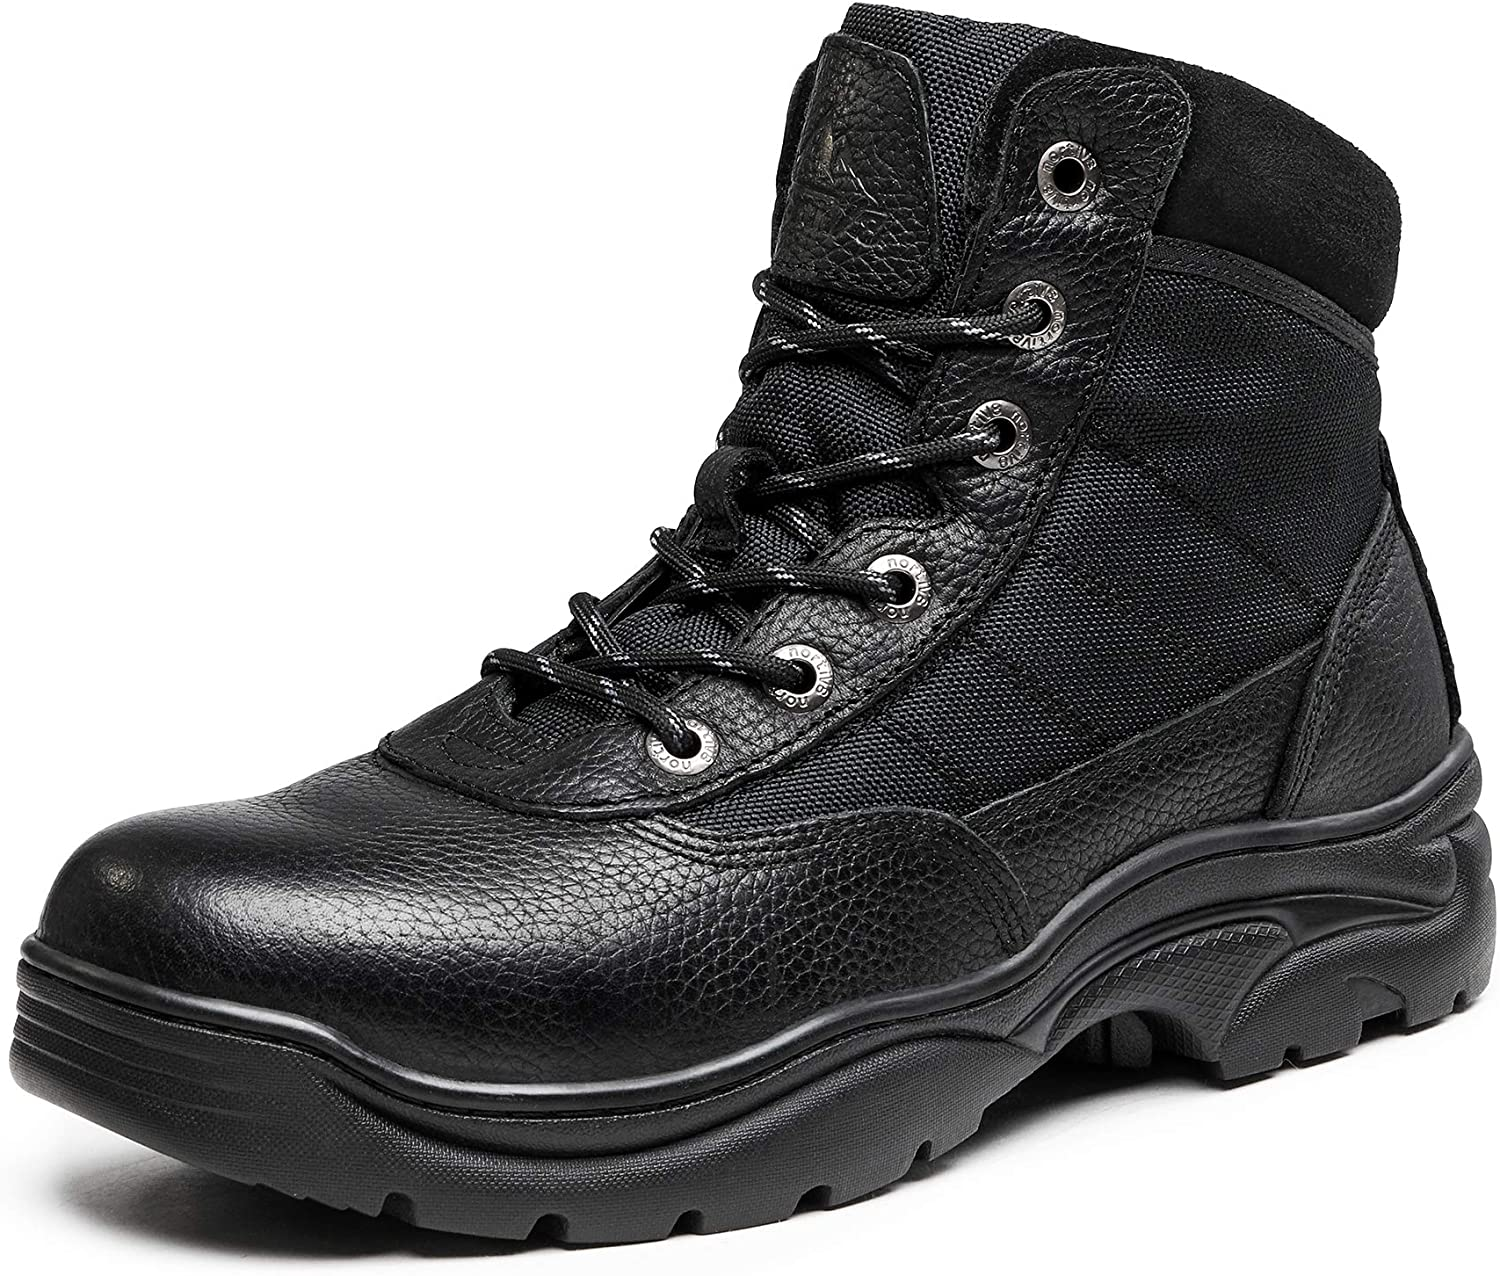 Product NORTIV 8 Men's Safety Steel Toe Indu Work Ankle All items free shipping Boots Breathable